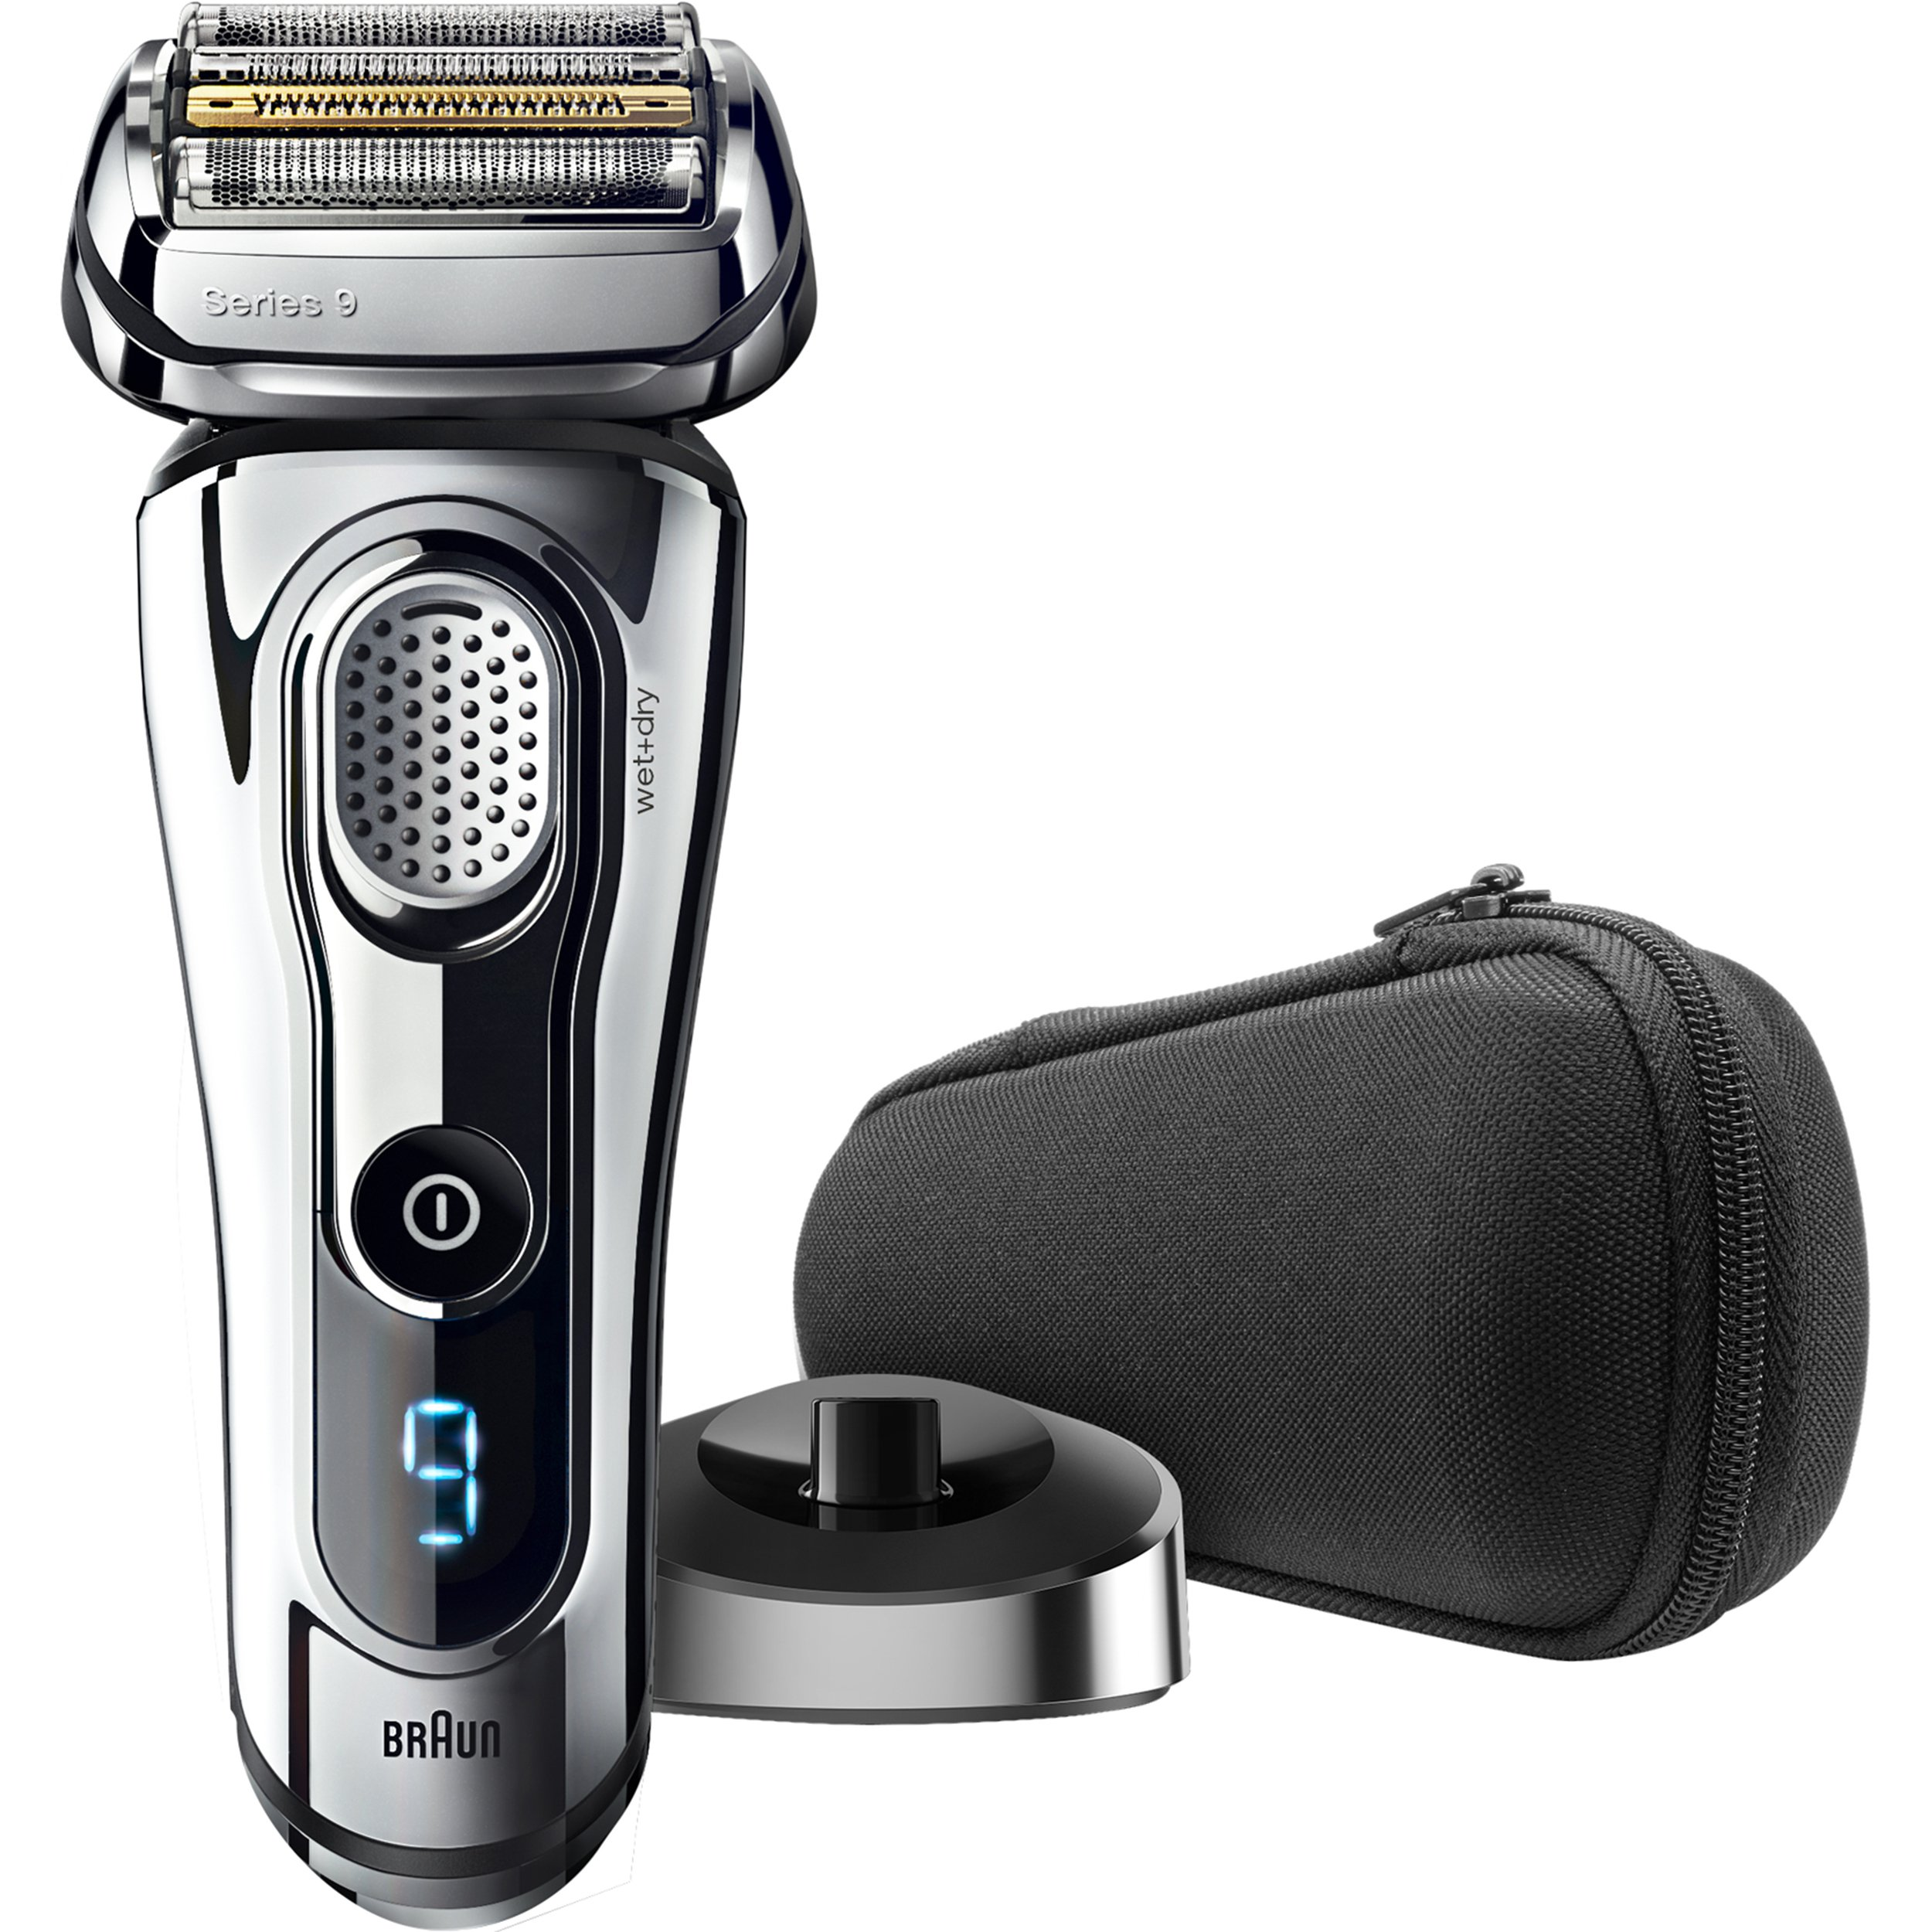 브라운 시리즈9 9290cc/9293s 전기면도기 Braun series 9 Braun Electric Razor for Men, Series 9 9293s Electric Shaver